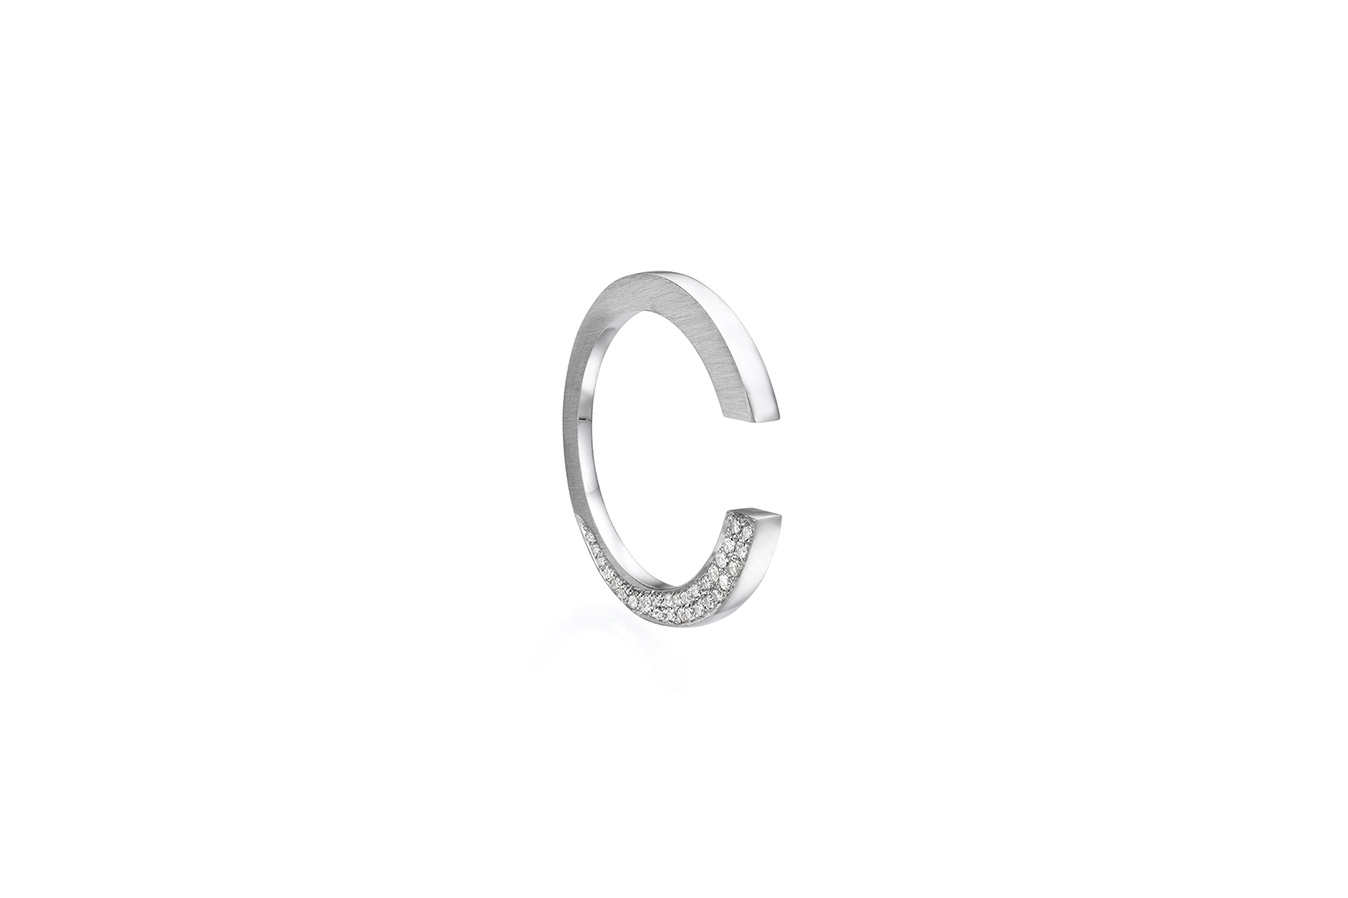 UNTITLED RING 18K WHITE GOLD 0.37 CT DIAMONDS